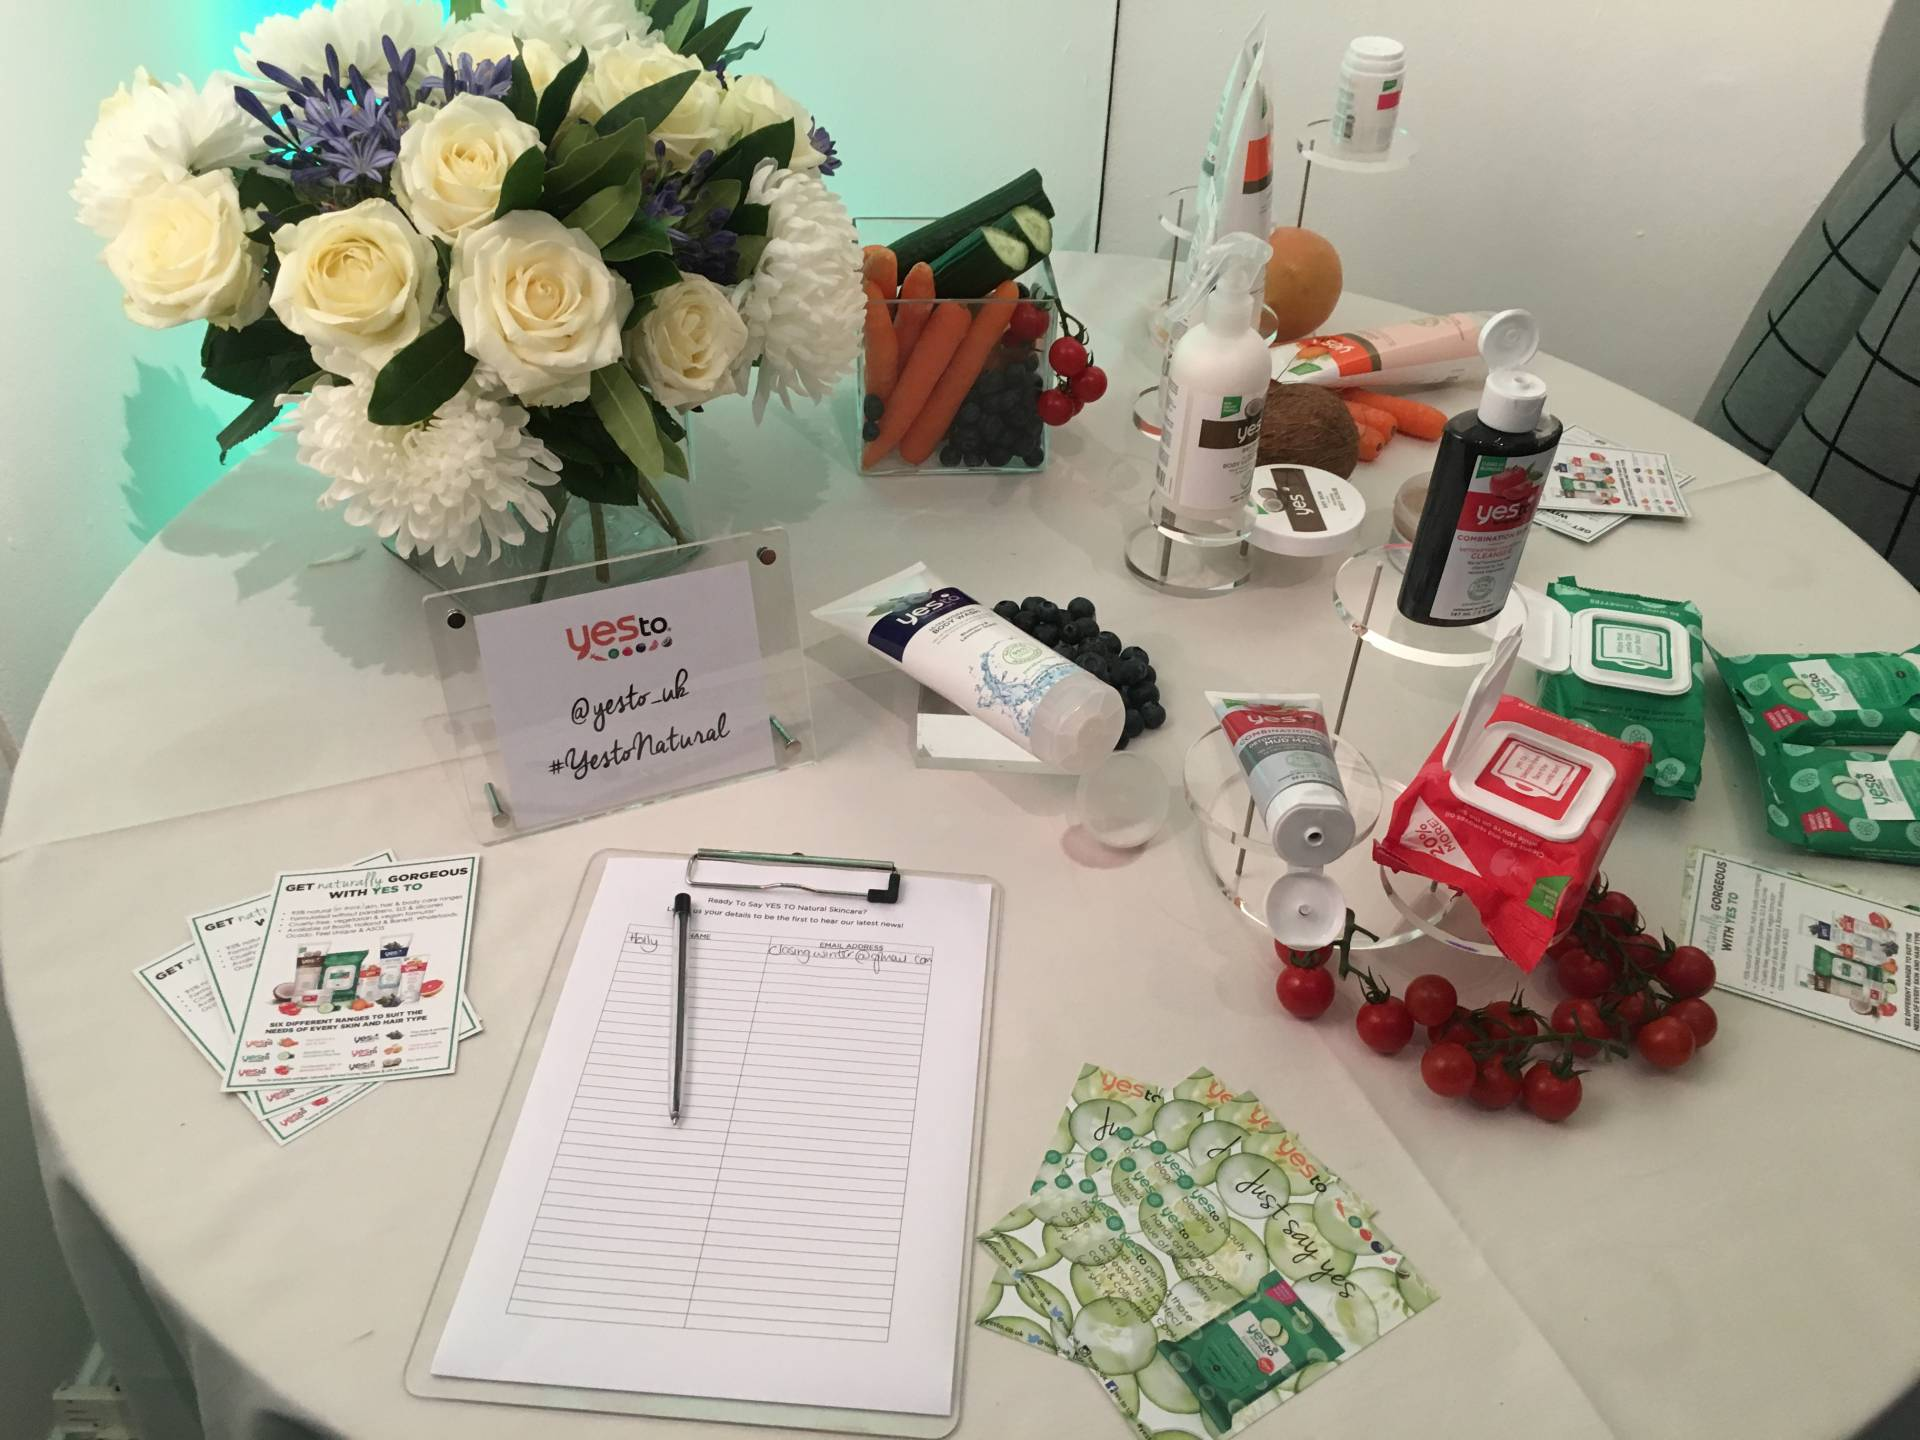 Blogosphere Magazine Event - Goodie Bag Reveal